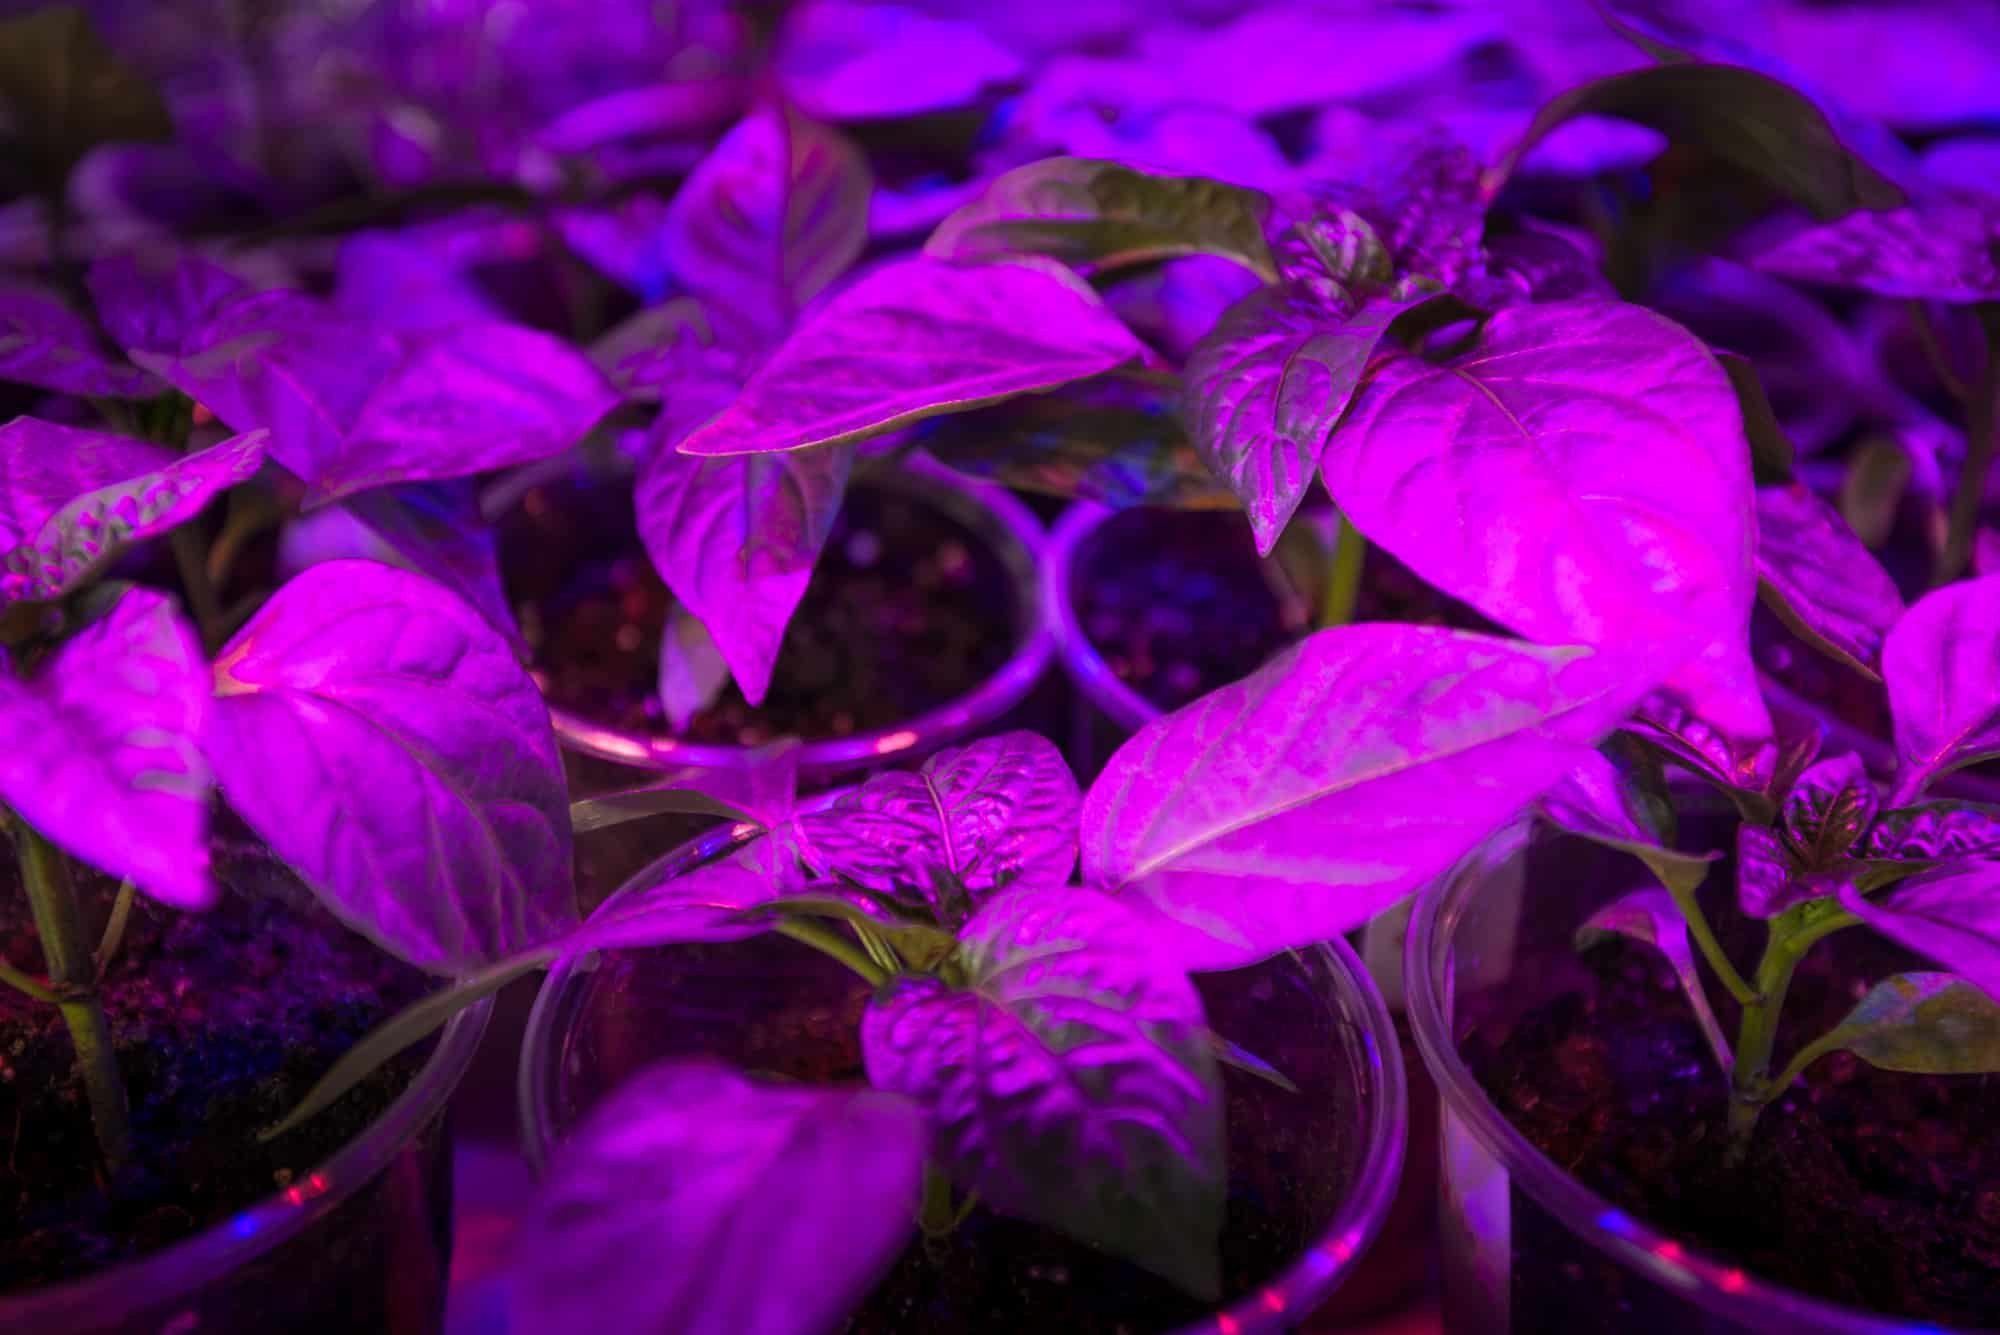 What Should You Look For In A Grow Light?